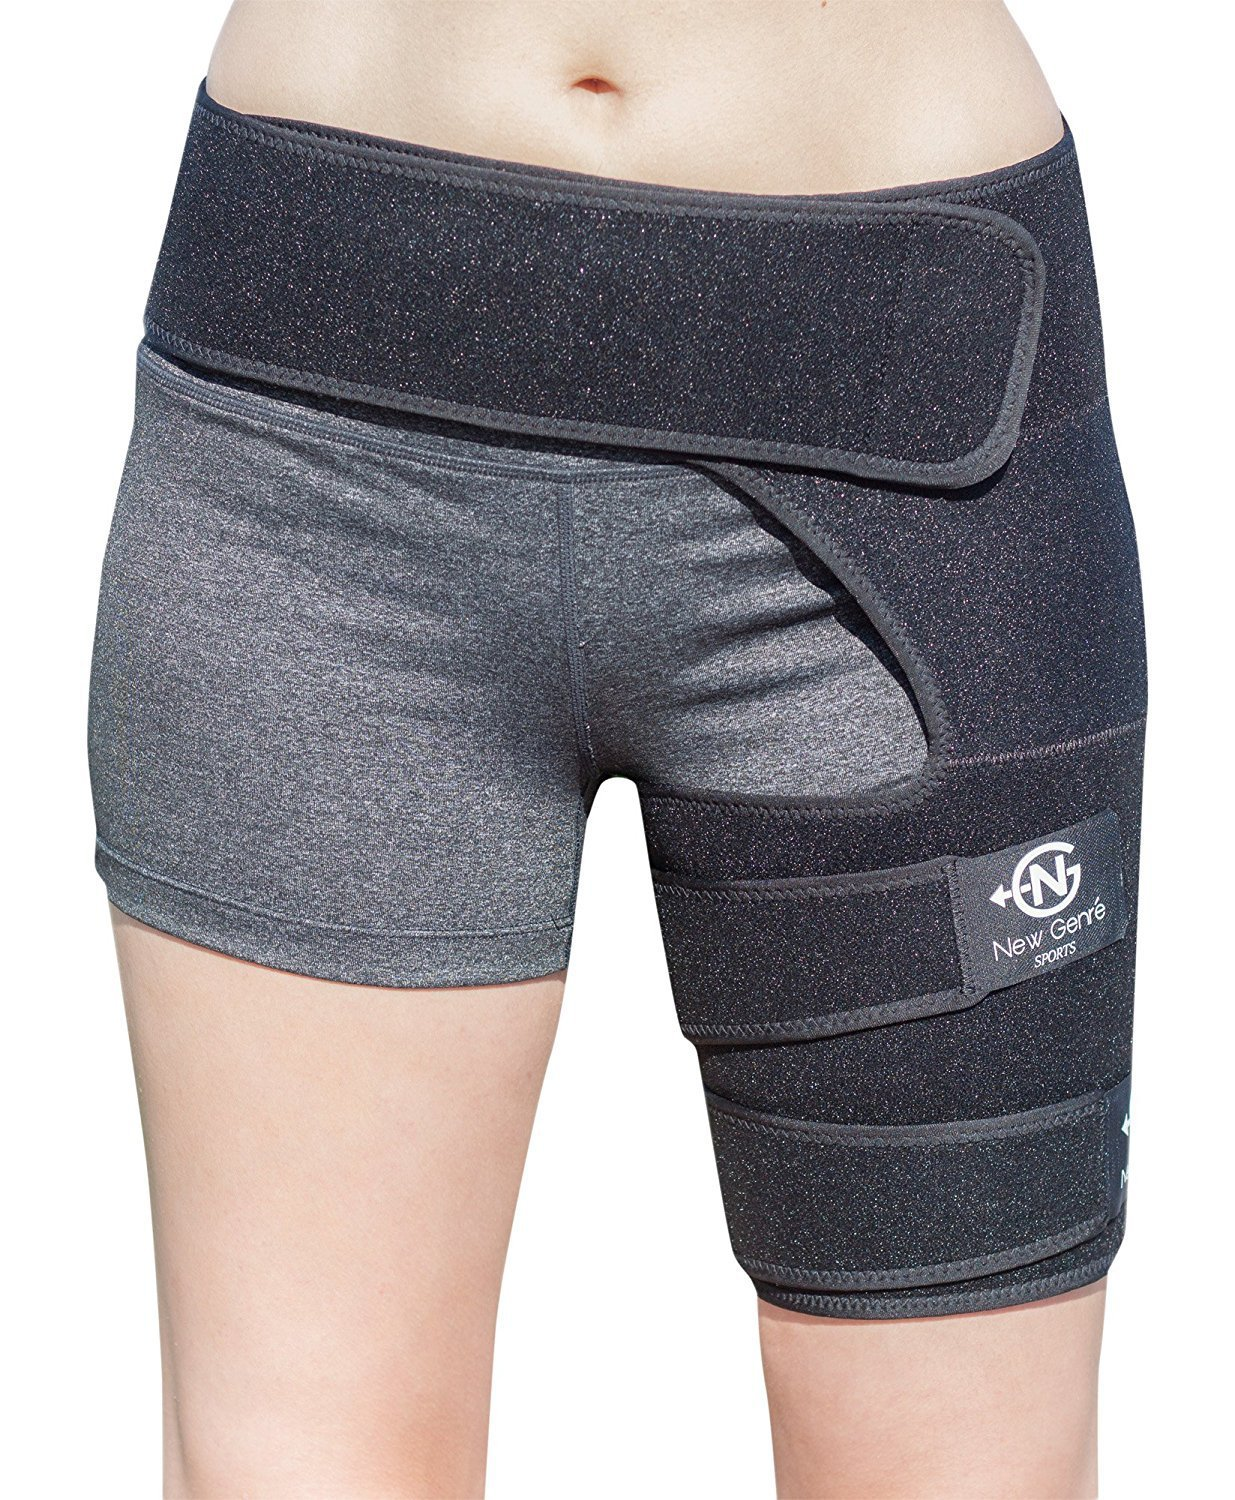 BiuStyle Wrap for Groin Hip Thigh Quad Hamstring Joints Sciatica Nerve Pain Relief Strap, Adjustable Support Brace for men/women providing recovery from leg muscle injury pull Belt